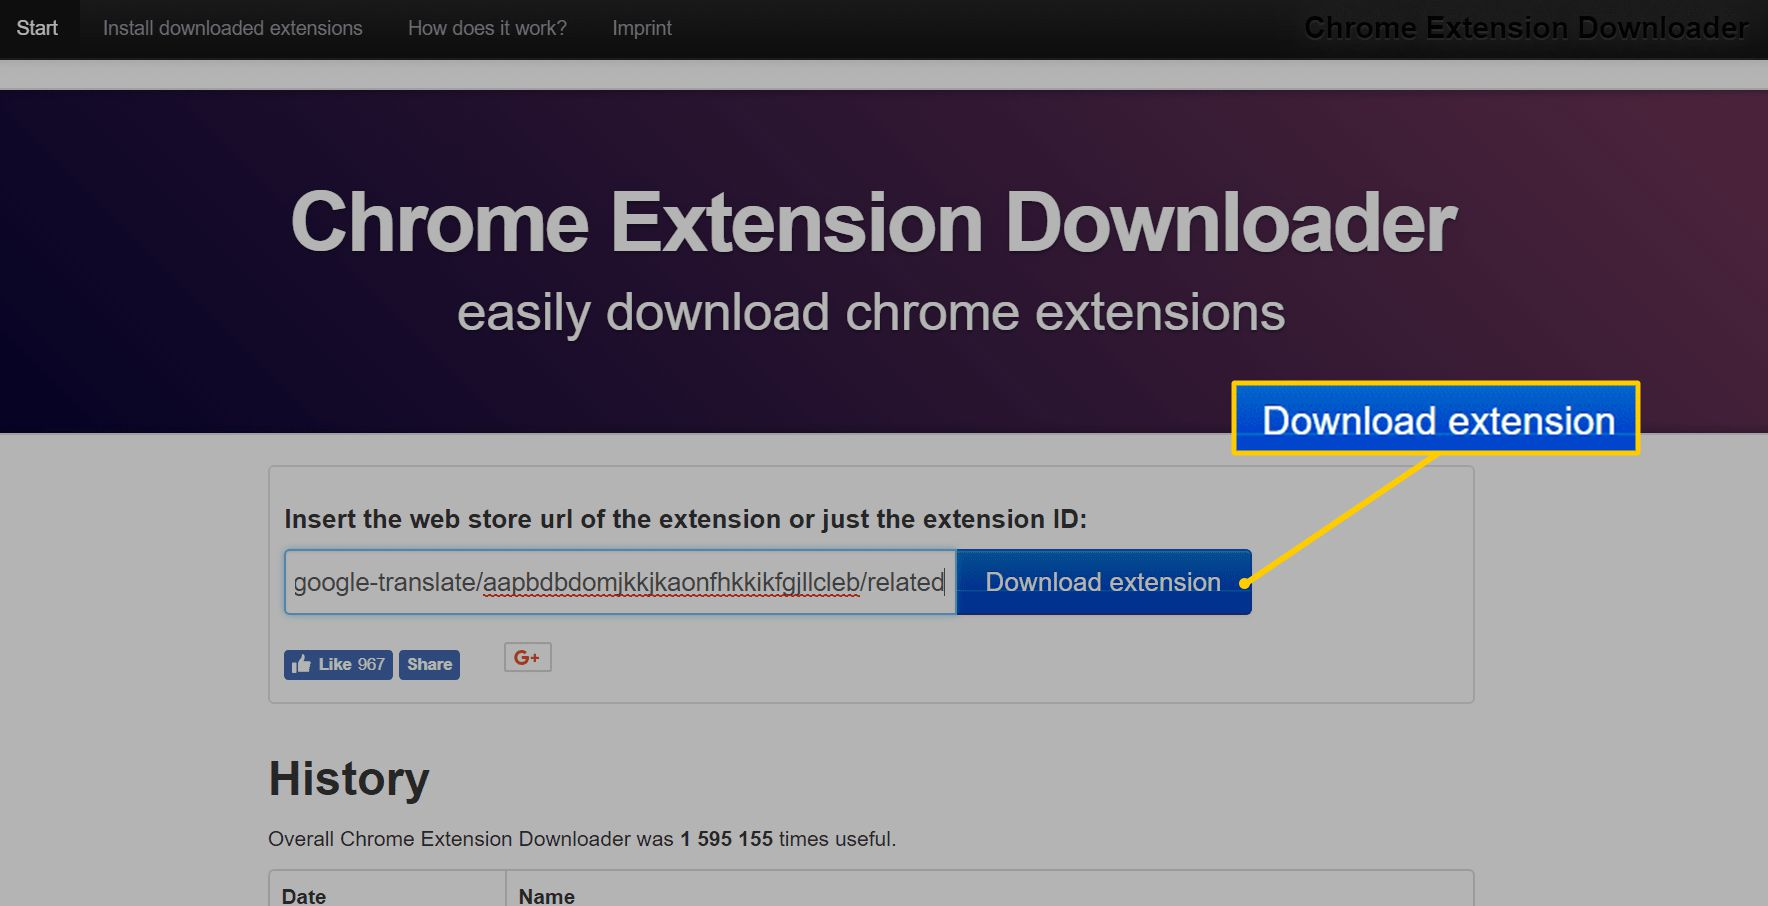 Download extension button